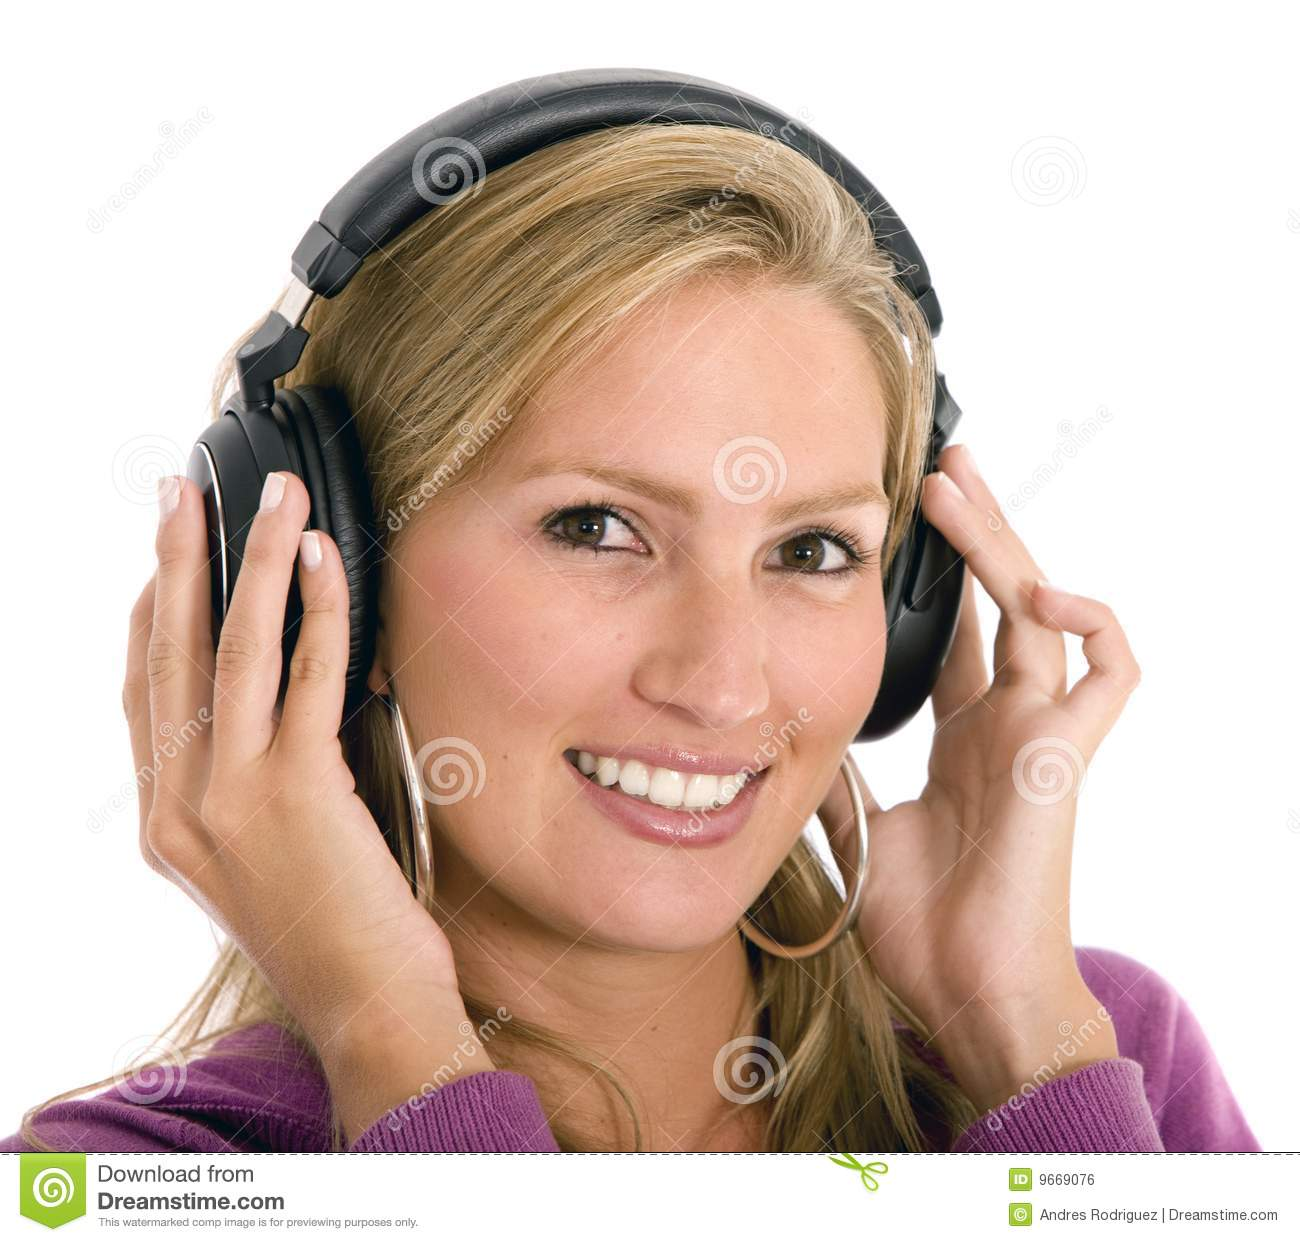 Woman Listening To Music Royalty Free Stock Image - Image: 9669076